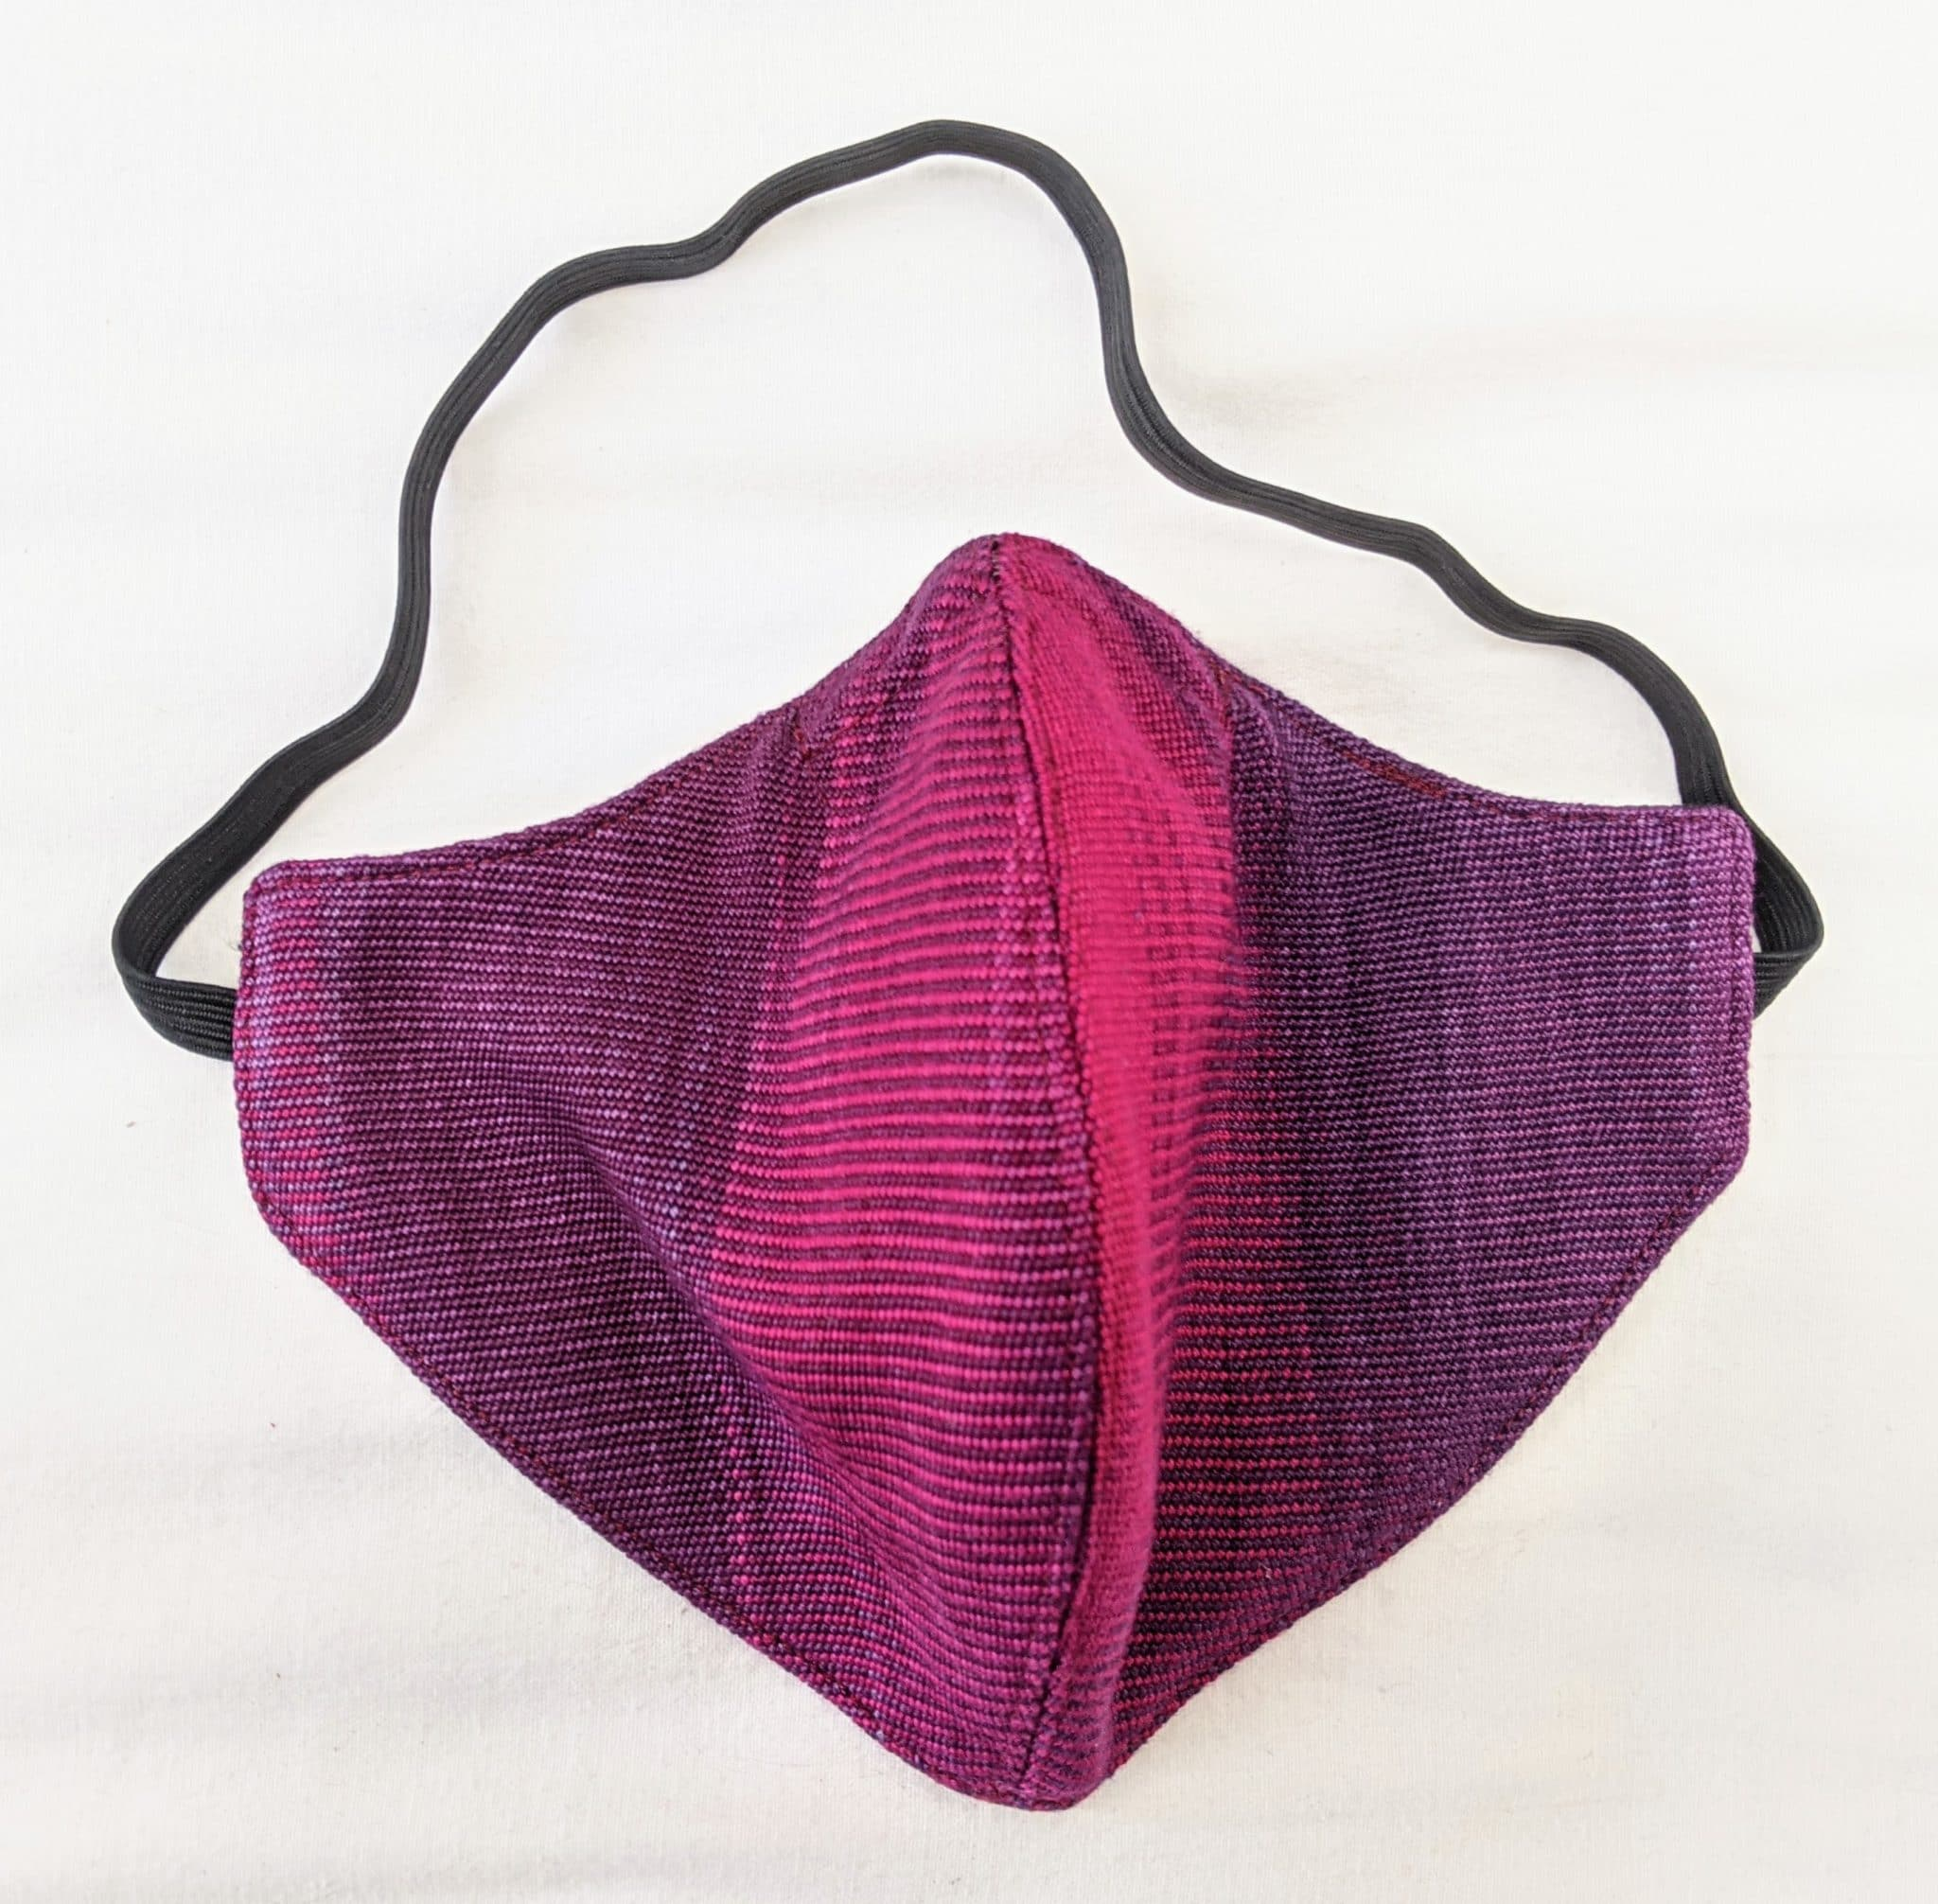 Handwoven Lightweight Bamboo Face Mask with Elastic Behind Head - Magenta, Purple